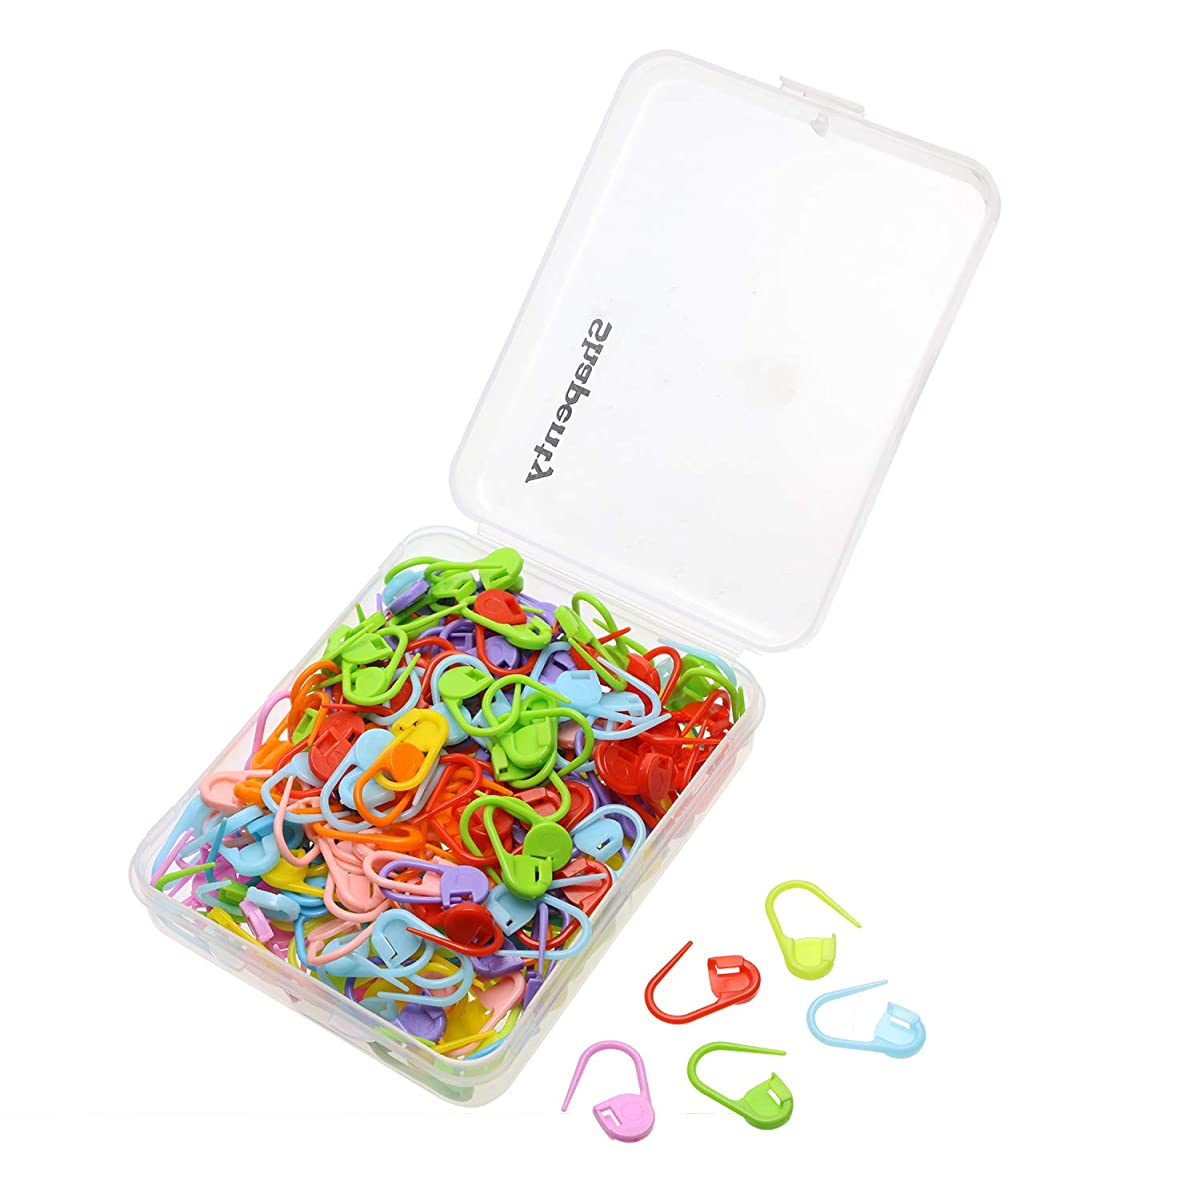 Shapenty Knitting Crochet Locking Stitch Markers DIY Craft Plastic Safety Pins Weave Stitch Needle Clip Counter, 22mm, (10 Colors, 250PCS)